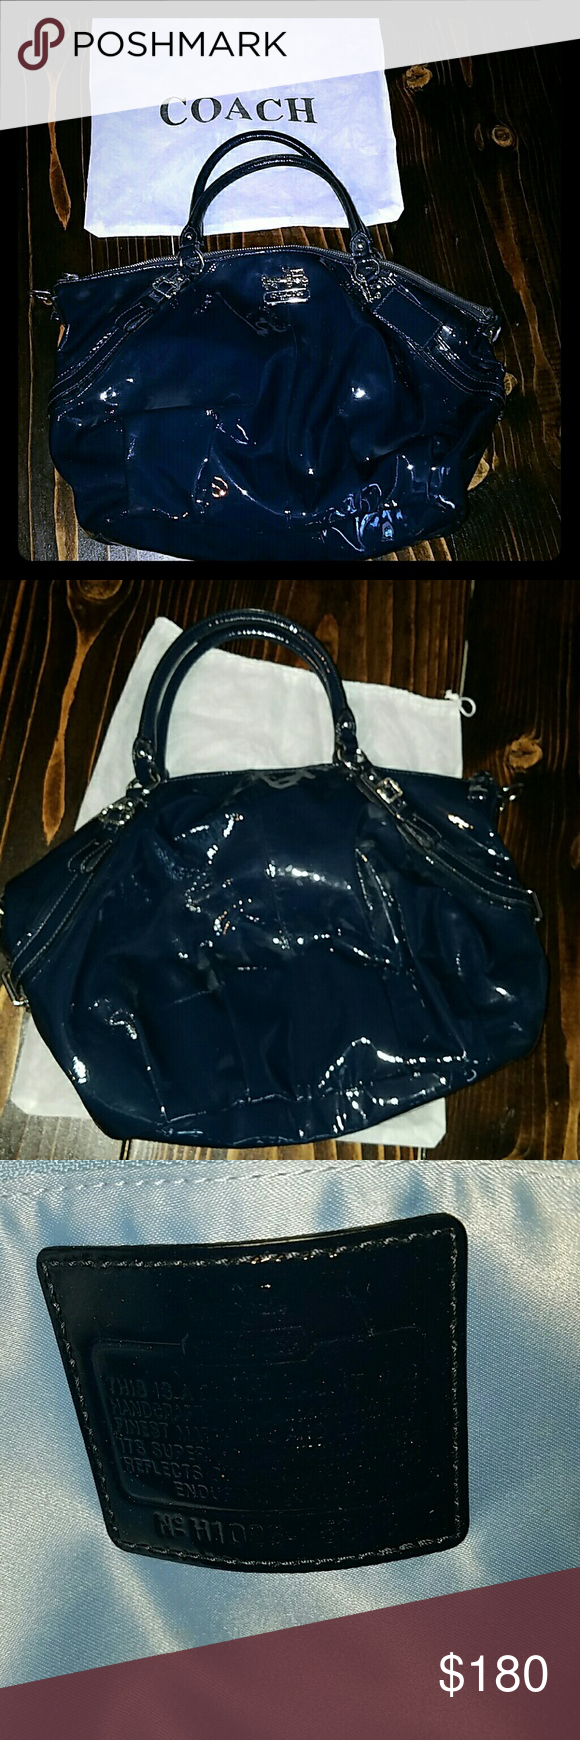 Coach Navy Patent Leather Bag